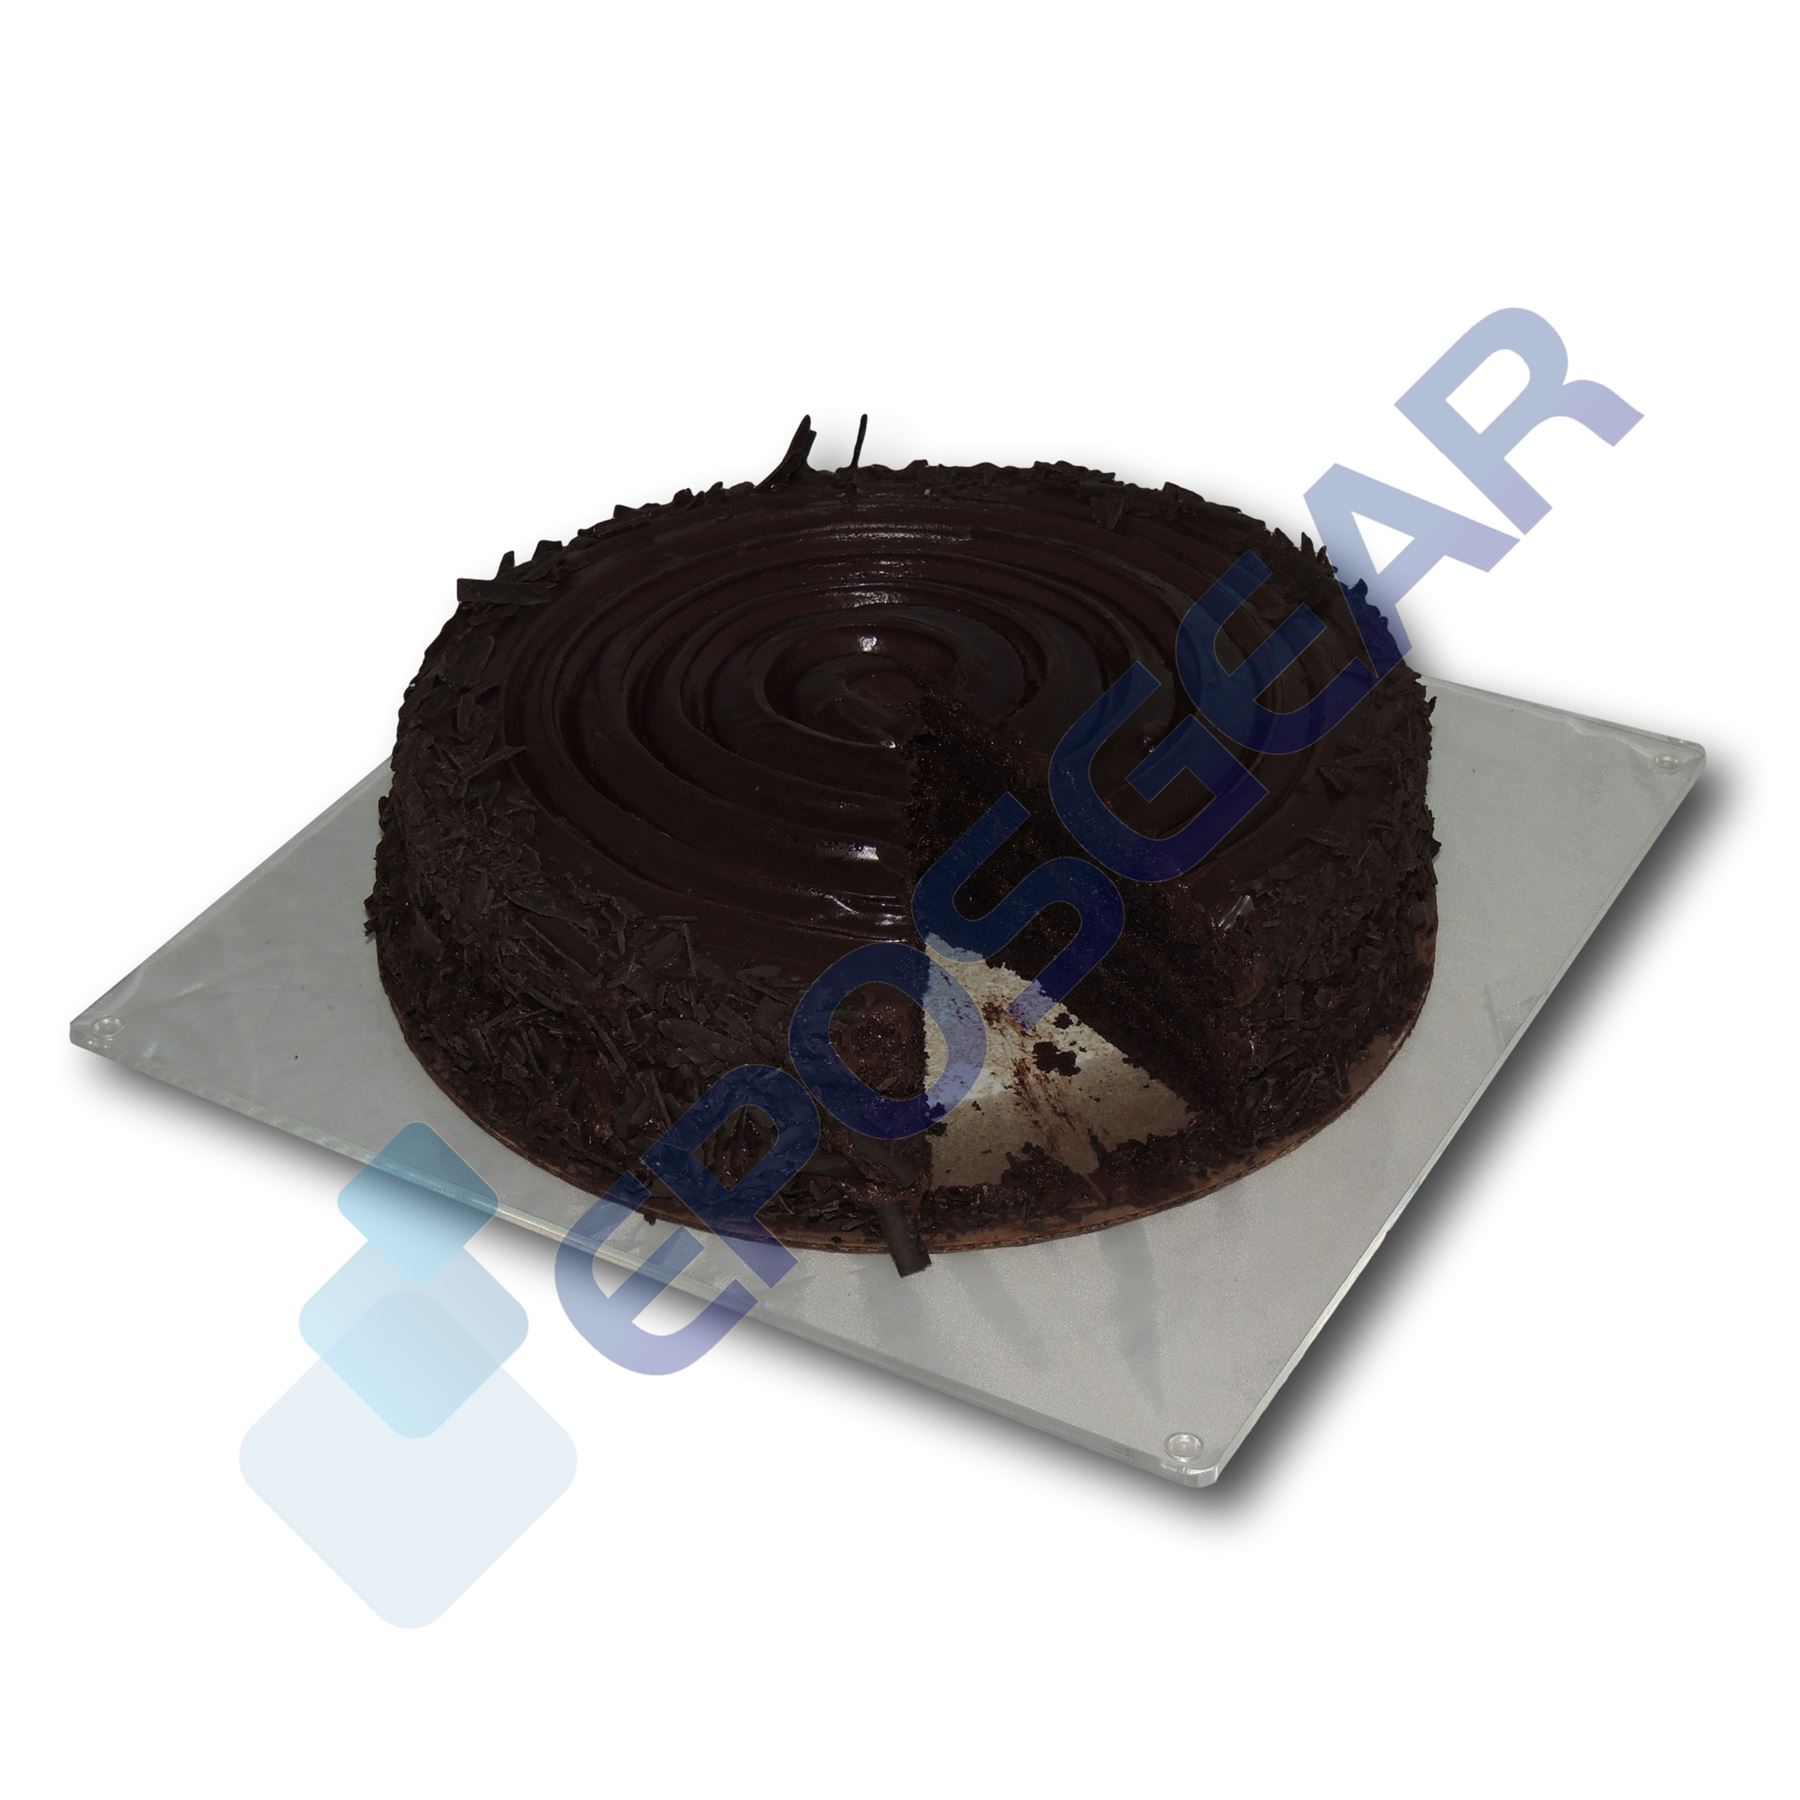 Disposable Cake Domes Wholesale Uk